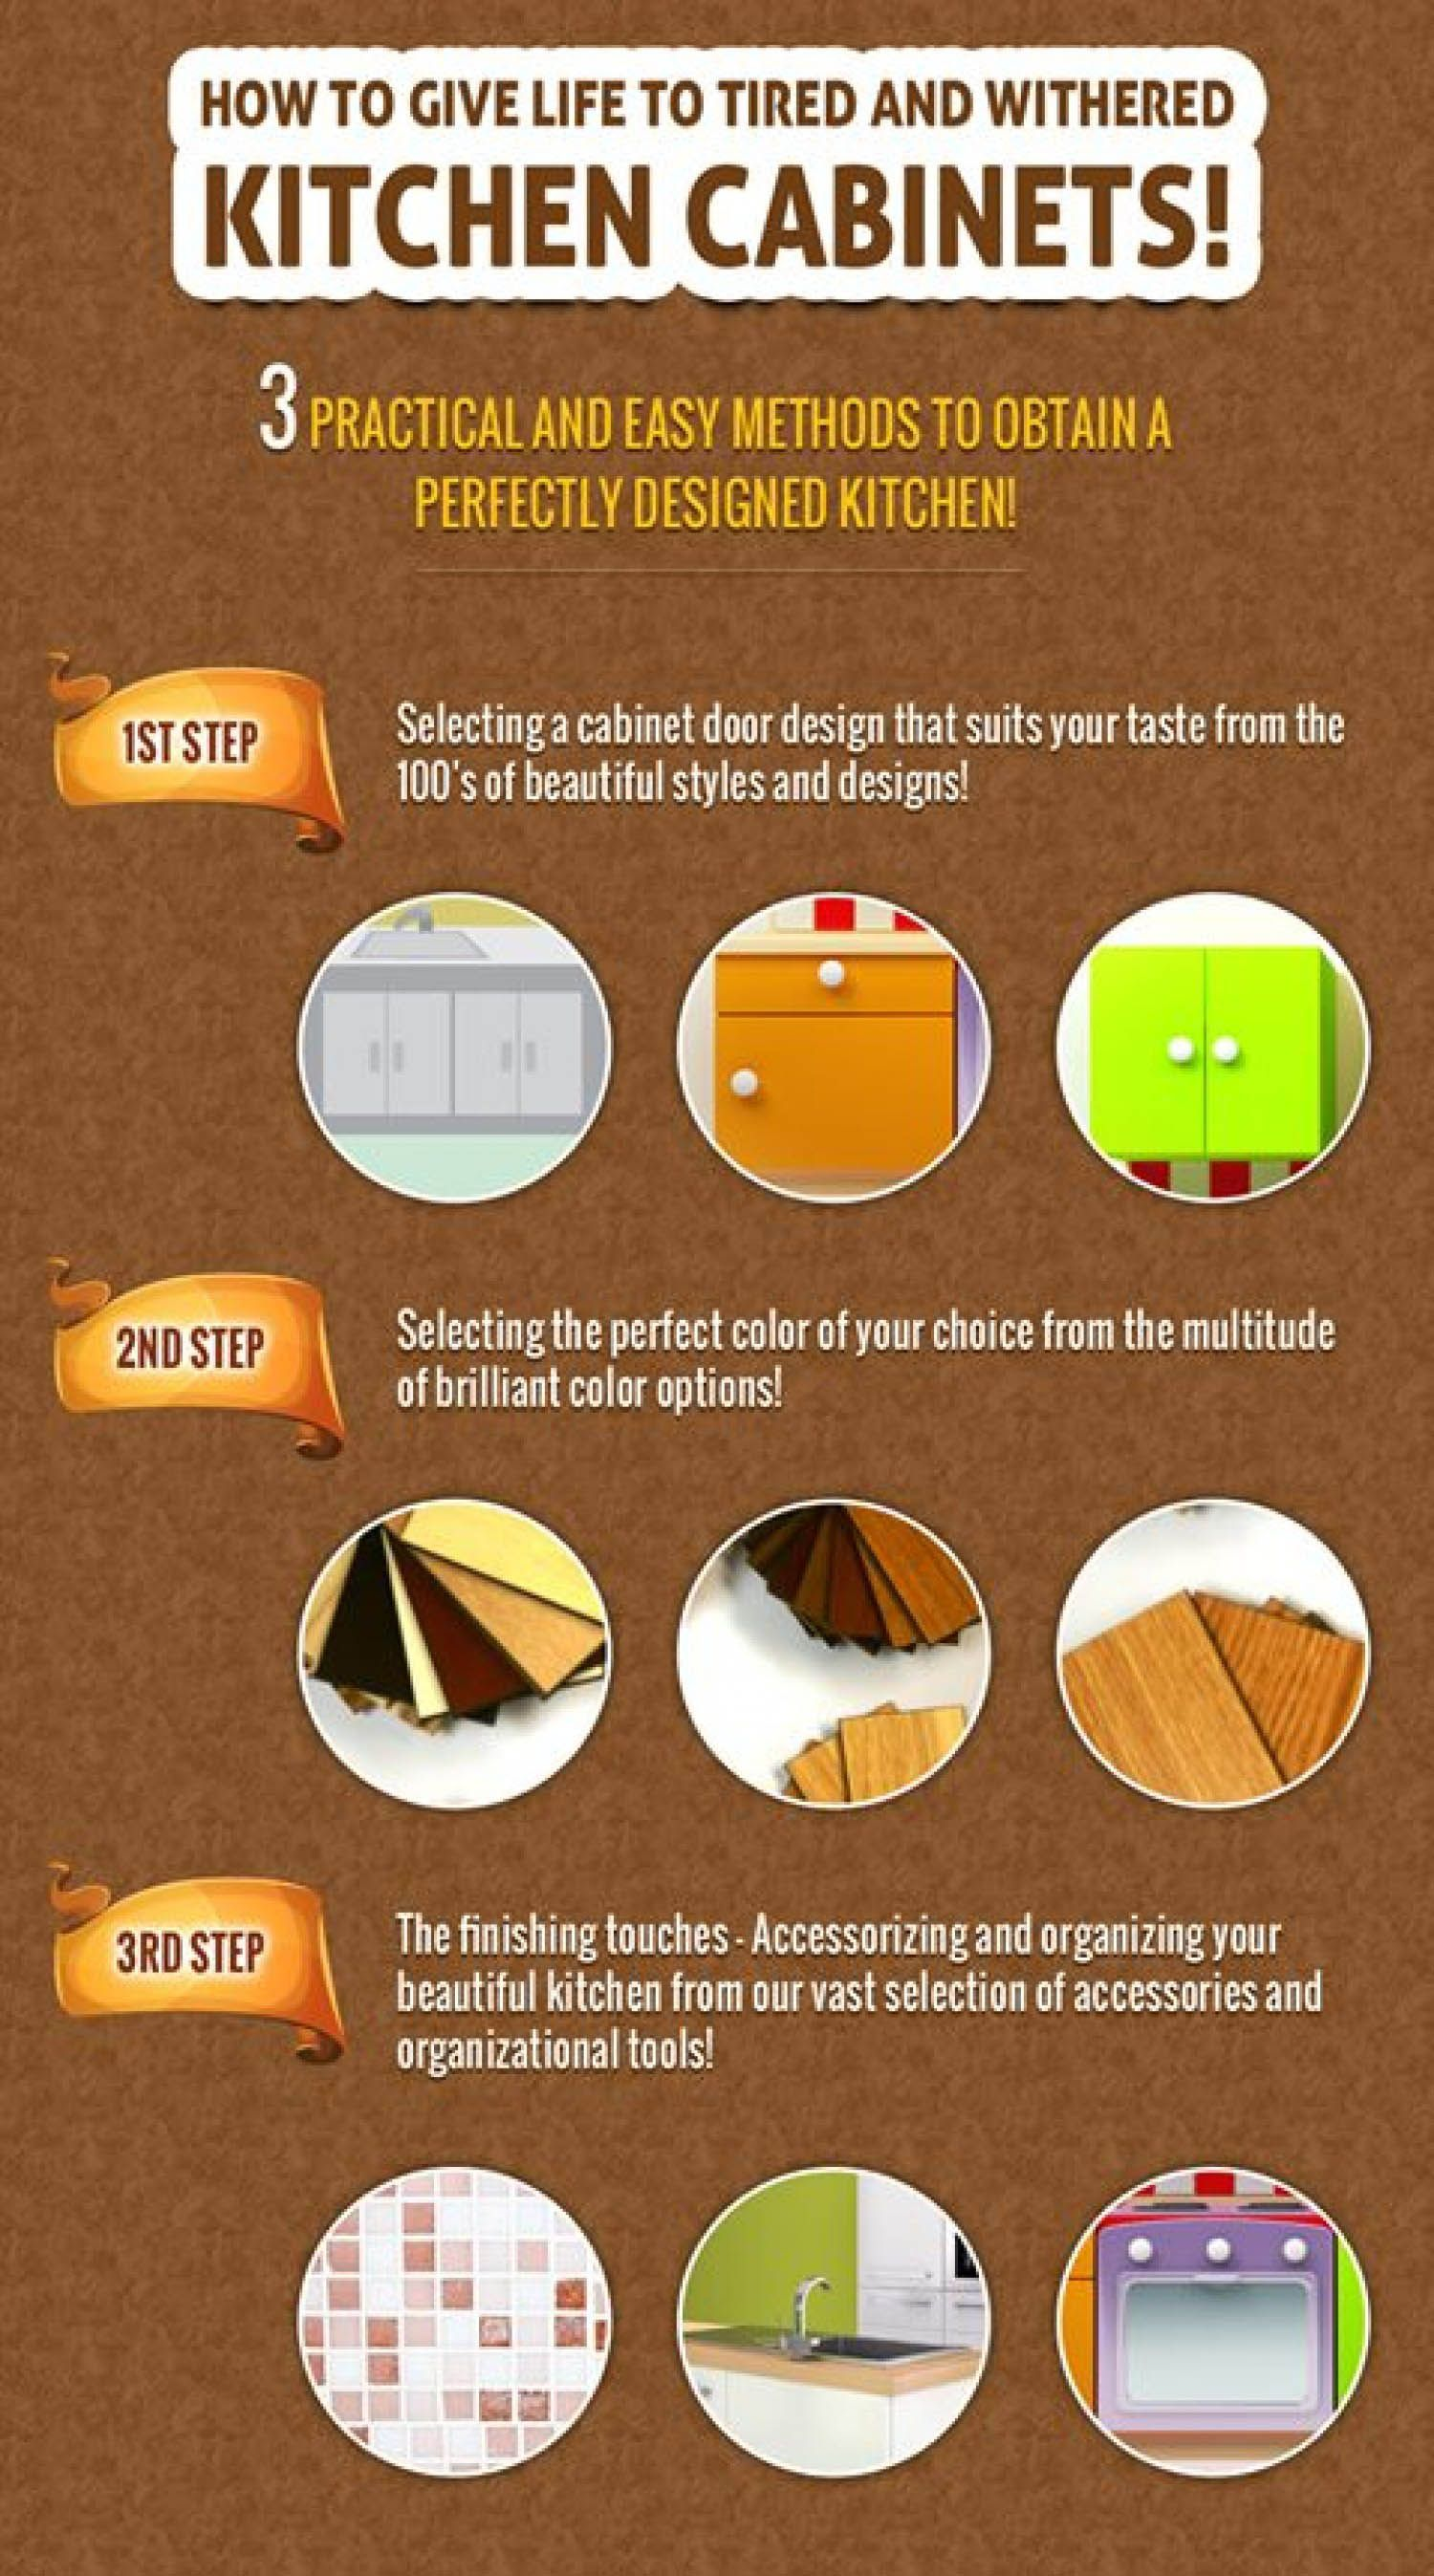 How To Give Life To Tired And Withered Kitchen Cabinets Infographic .